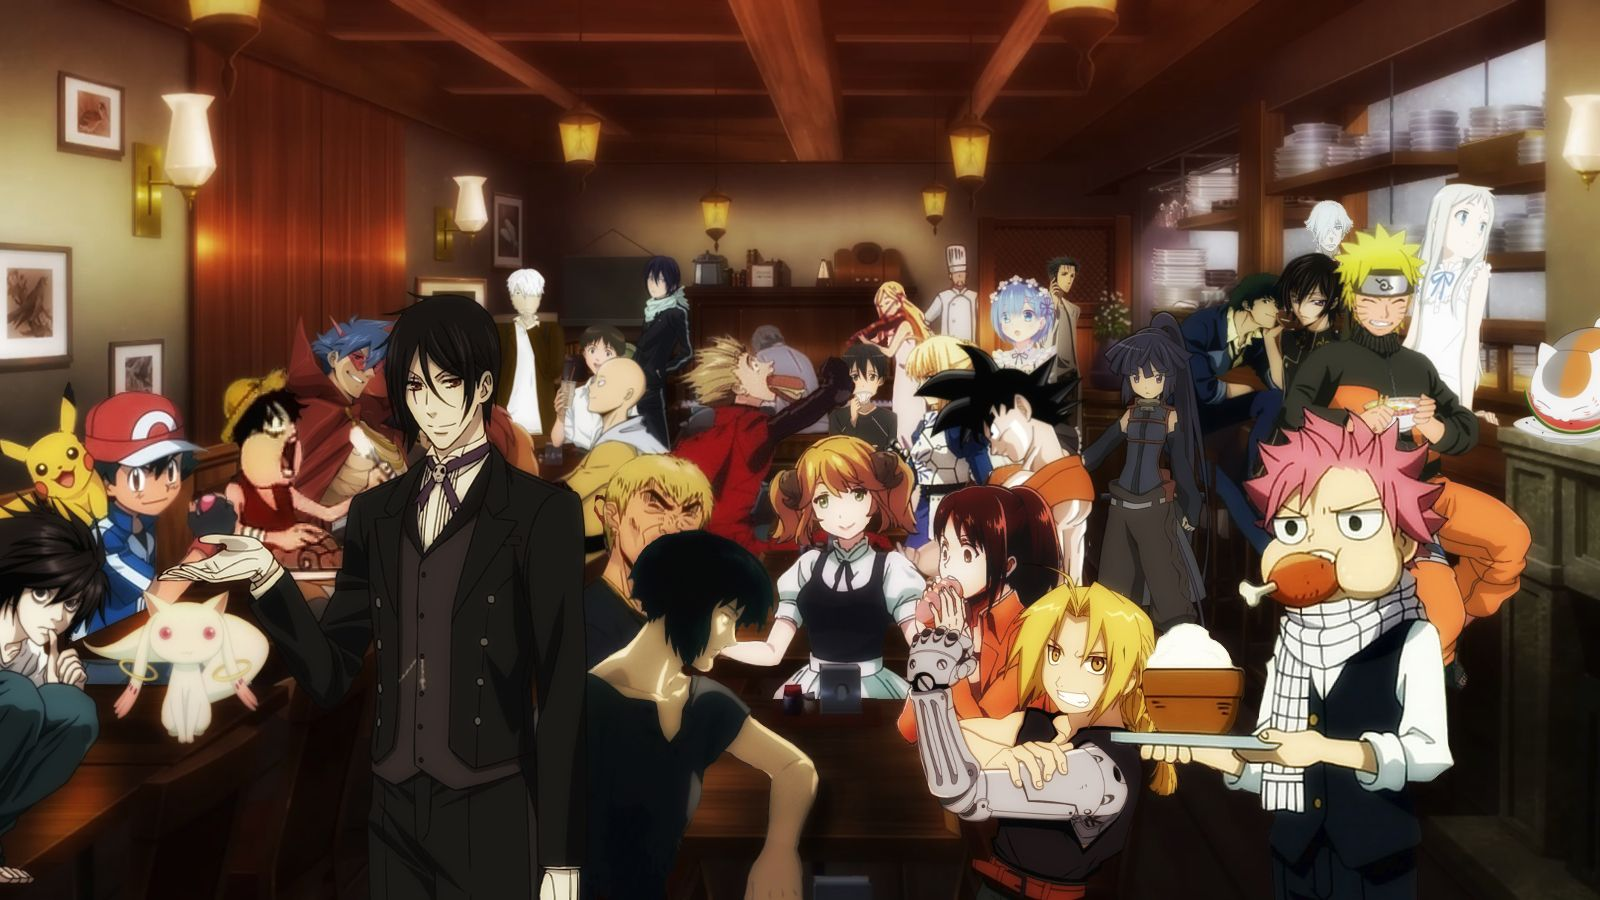 Pin By Meringue Cookie On Restaurant To Another World Anime